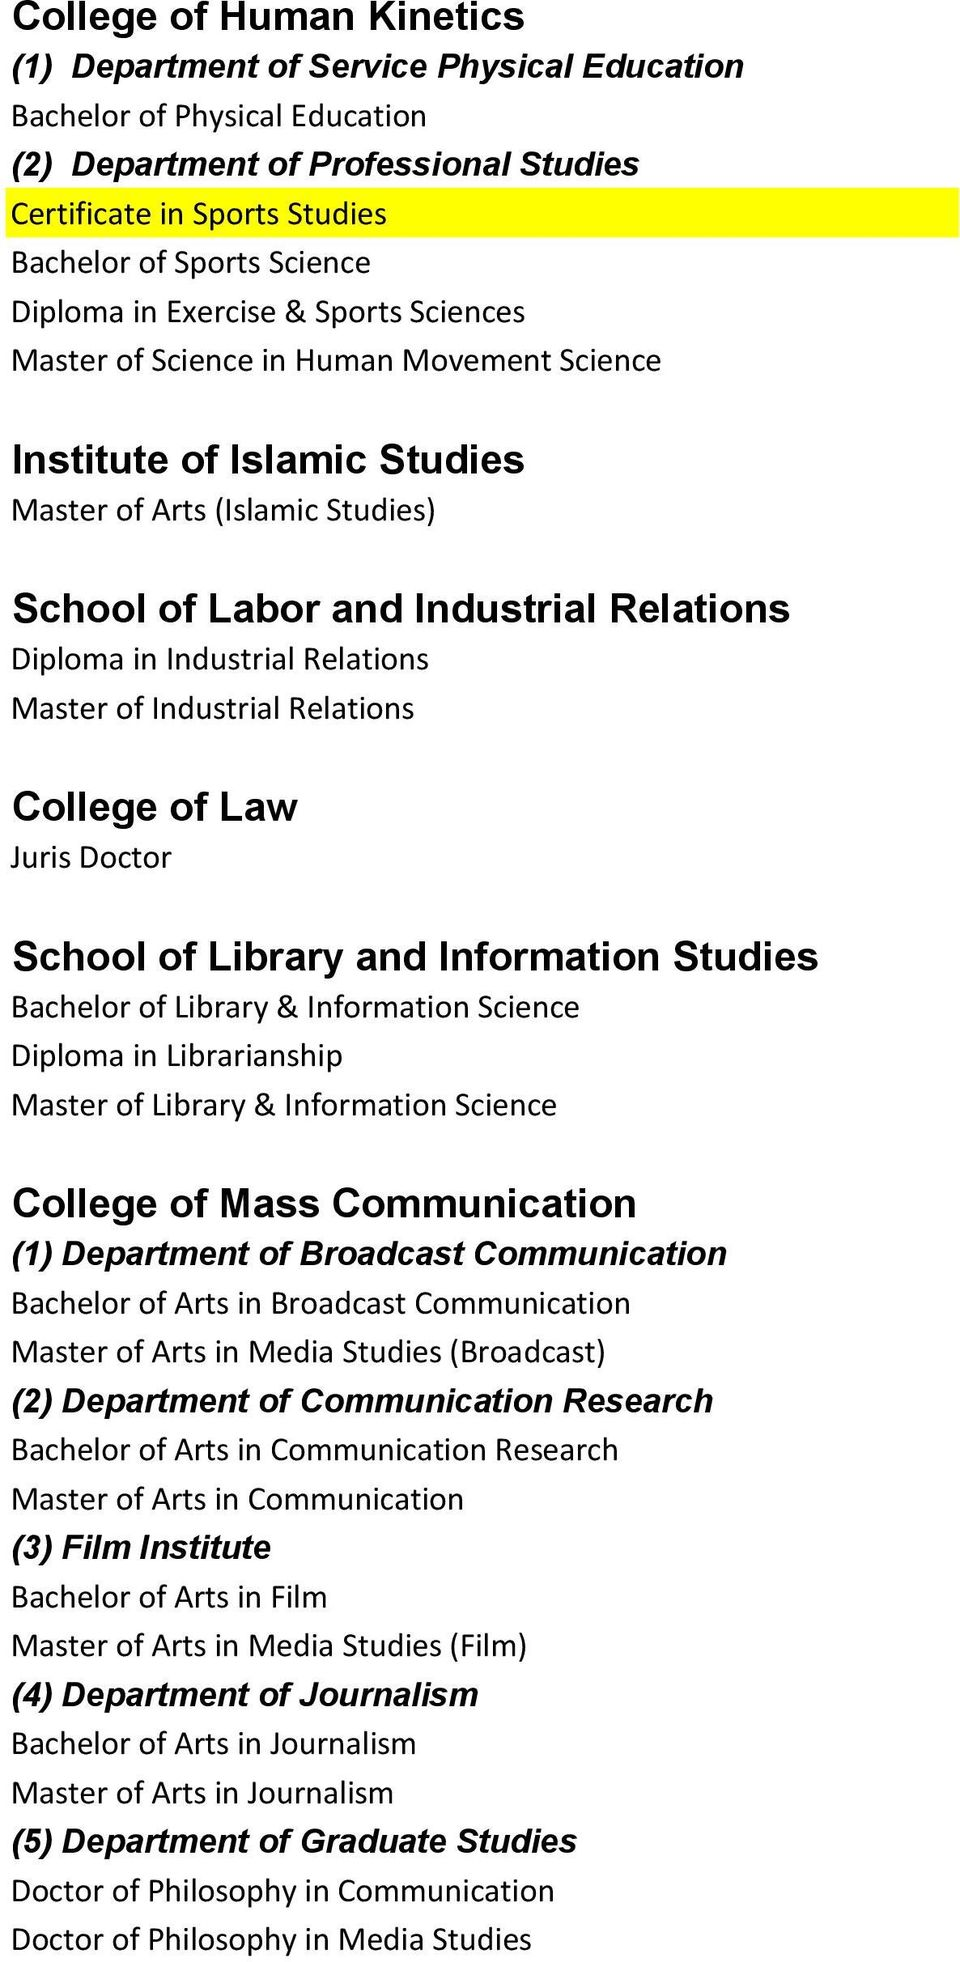 Industrial Relations Master of Industrial Relations College of Law Juris Doctor School of Library and Information Studies Bachelor of Library & Information Science Diploma in Librarianship Master of